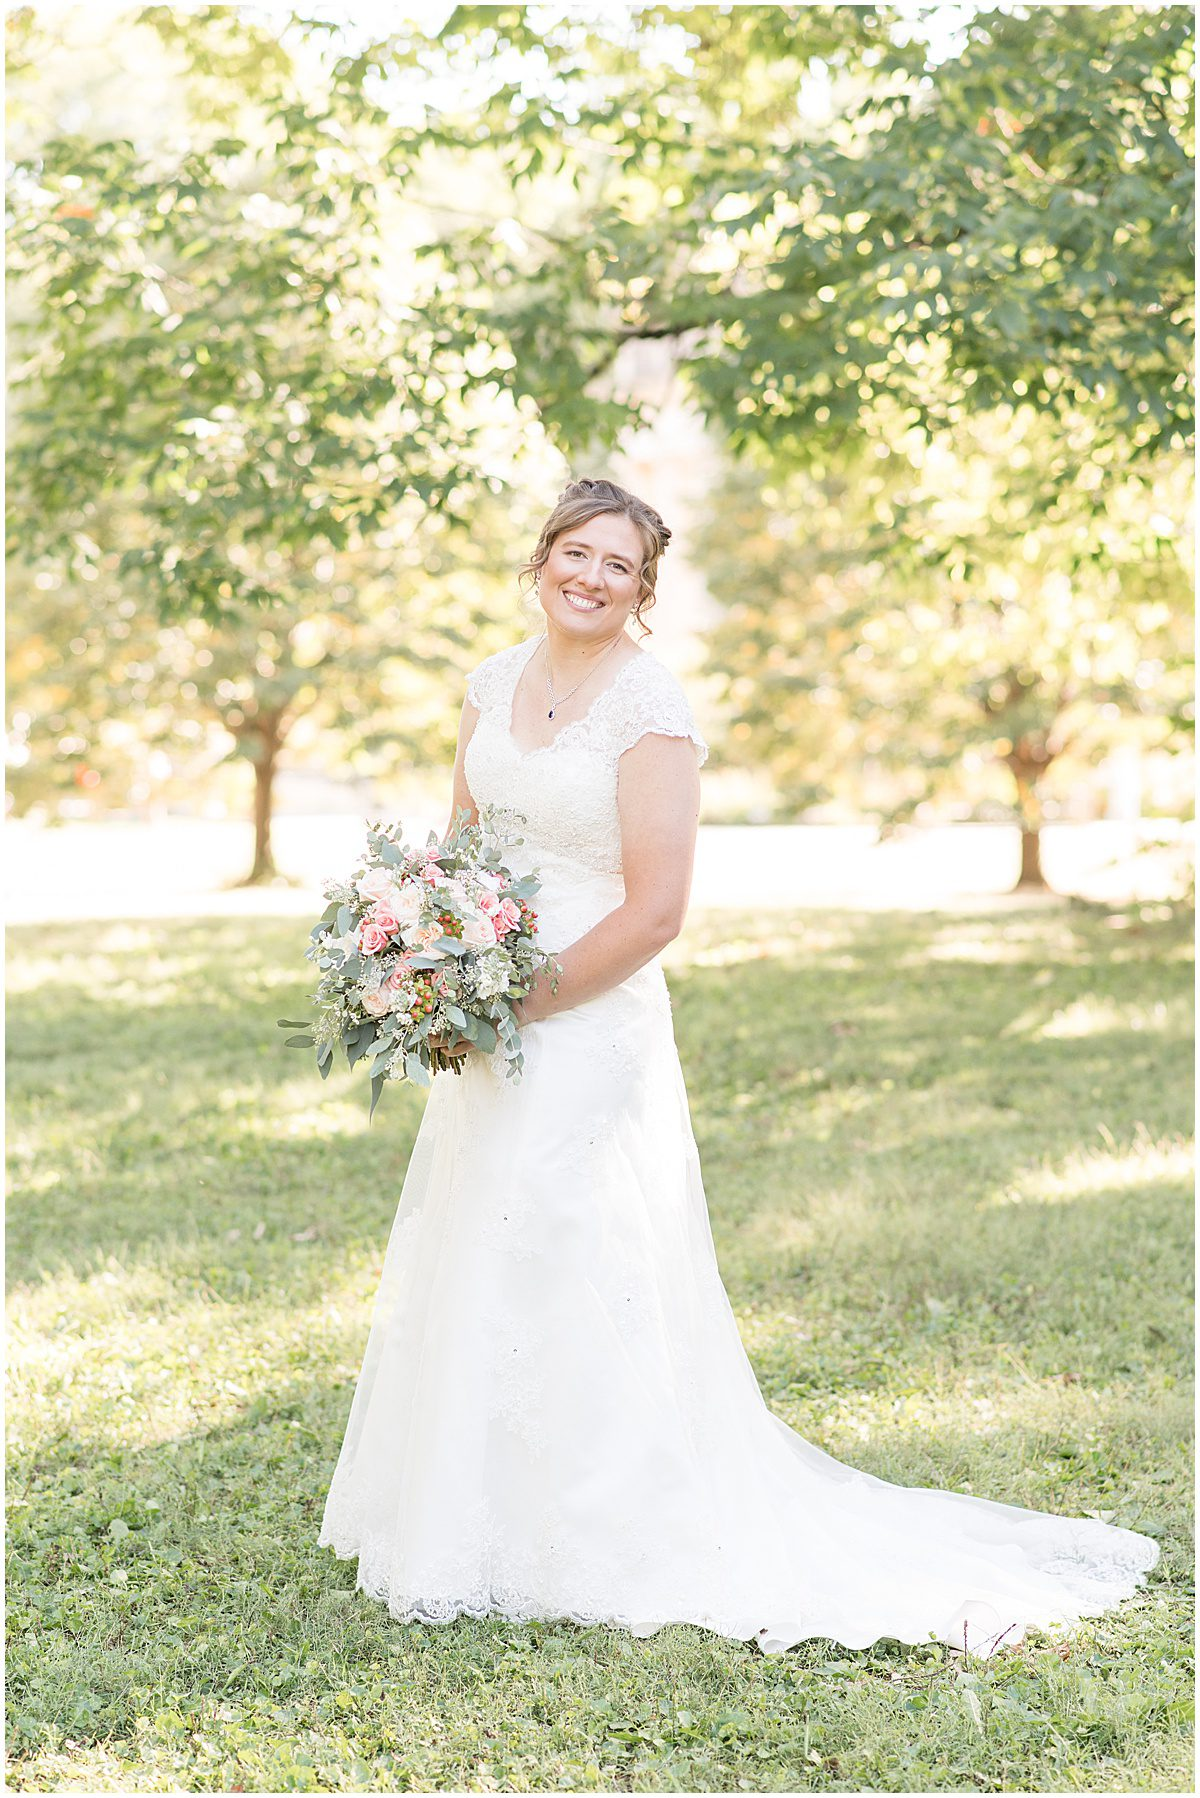 Bridal photos for intimate wedding at Holliday Park in Indianapolis